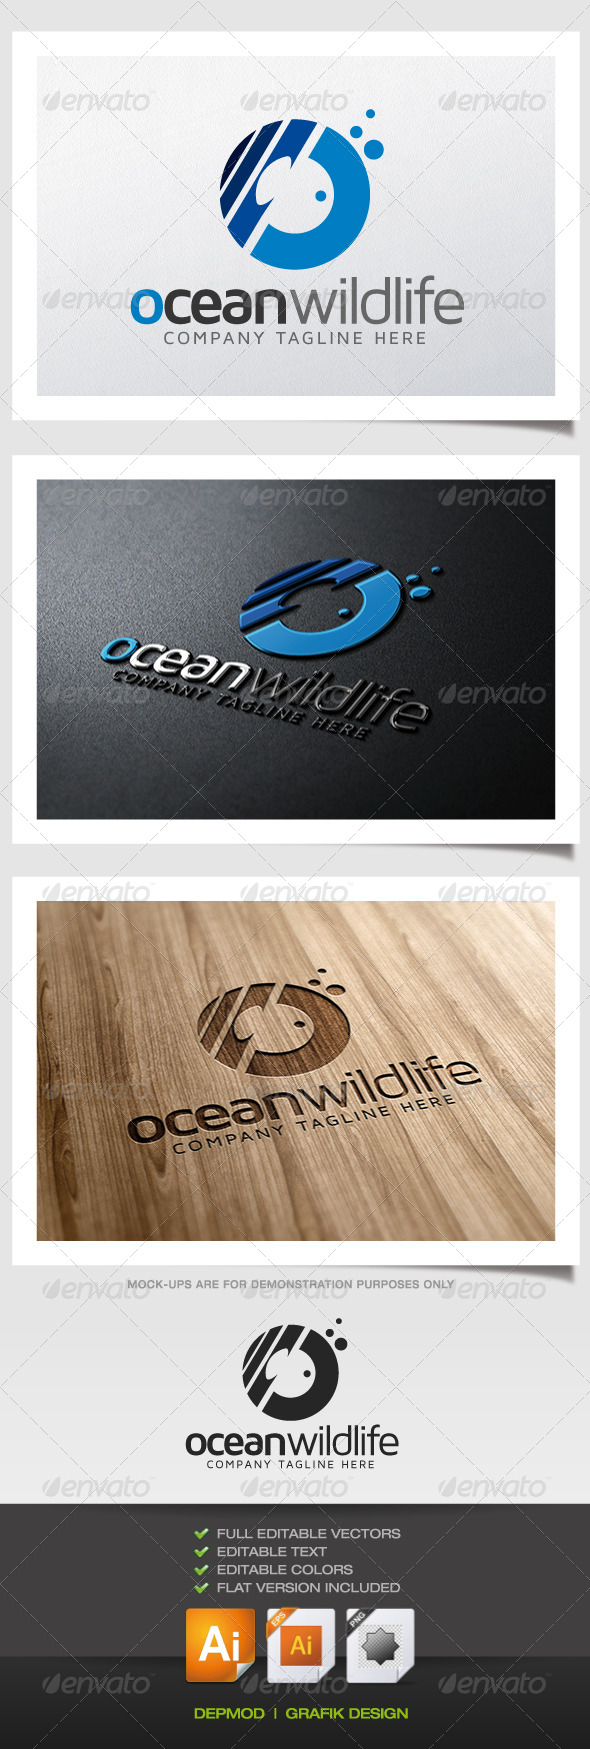 GraphicRiver Ocean Wildlife Logo 5373945